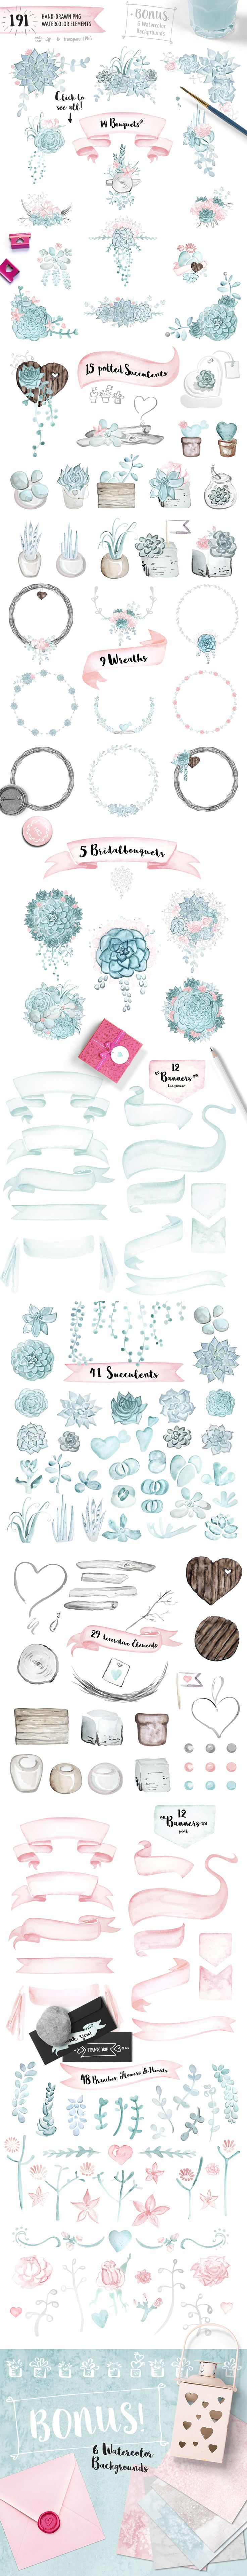 60%off! Succulent Watercolor Wedding by Doris Nawratil on @creativemarket